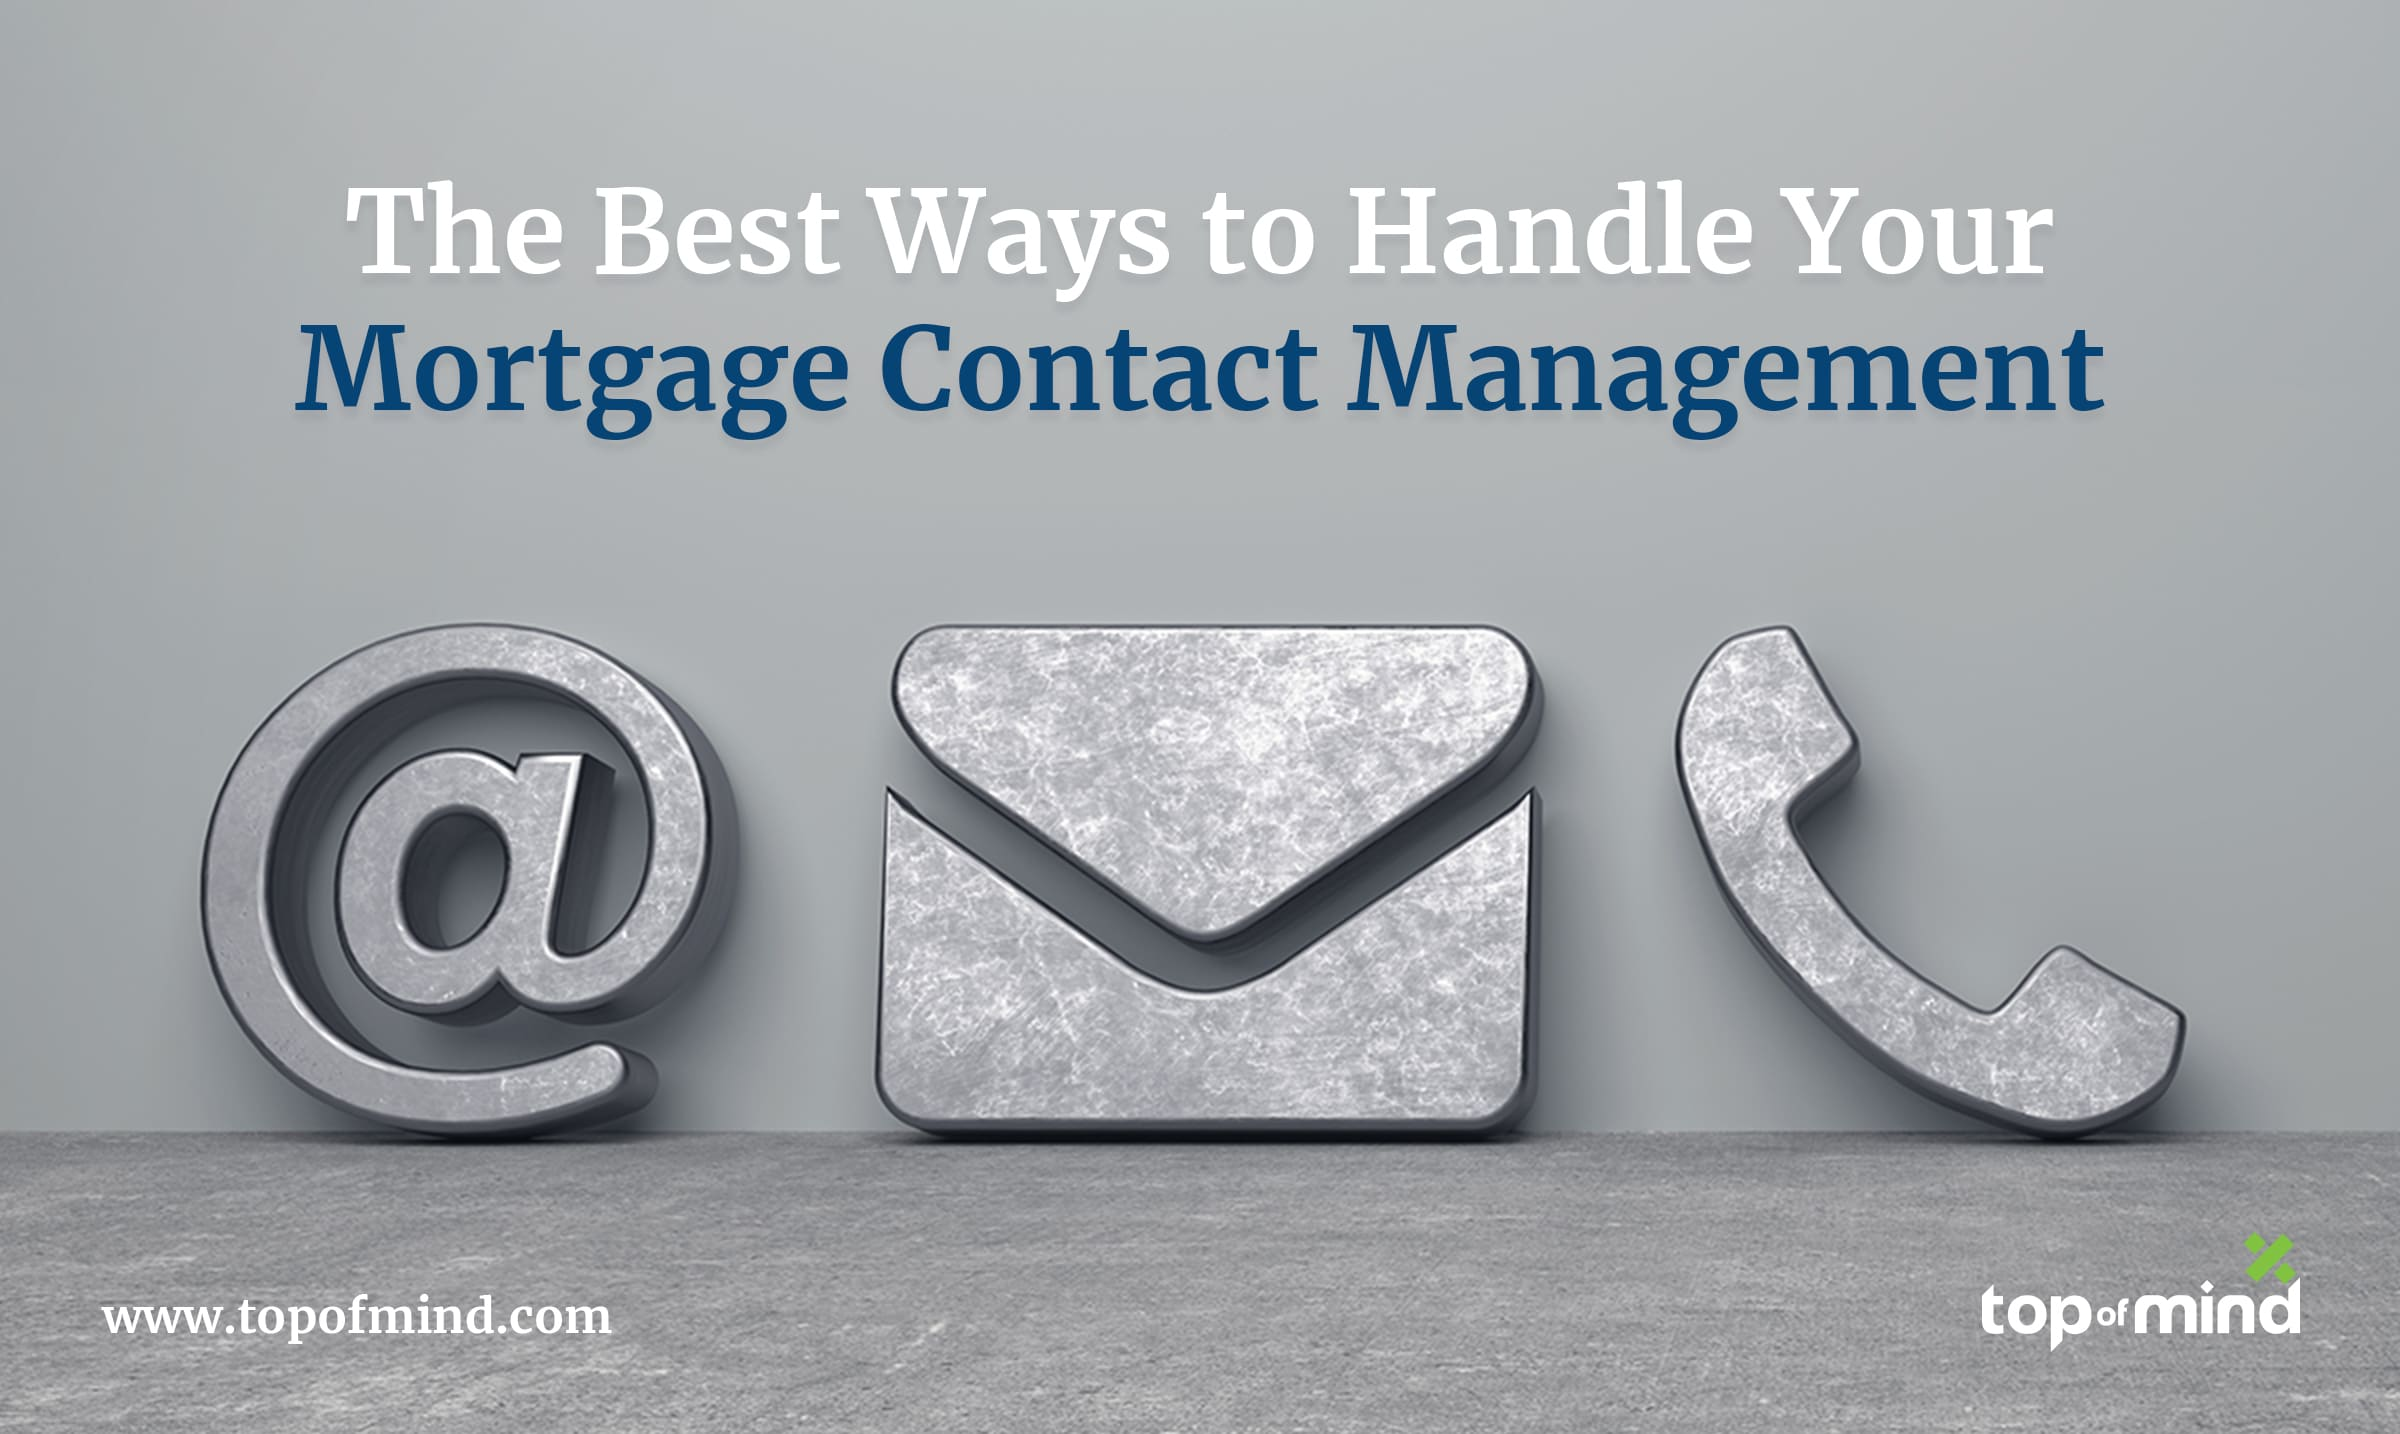 the-best-ways-to-handle-your-mortgage-contact-management-by-Top-ofMind-Networks